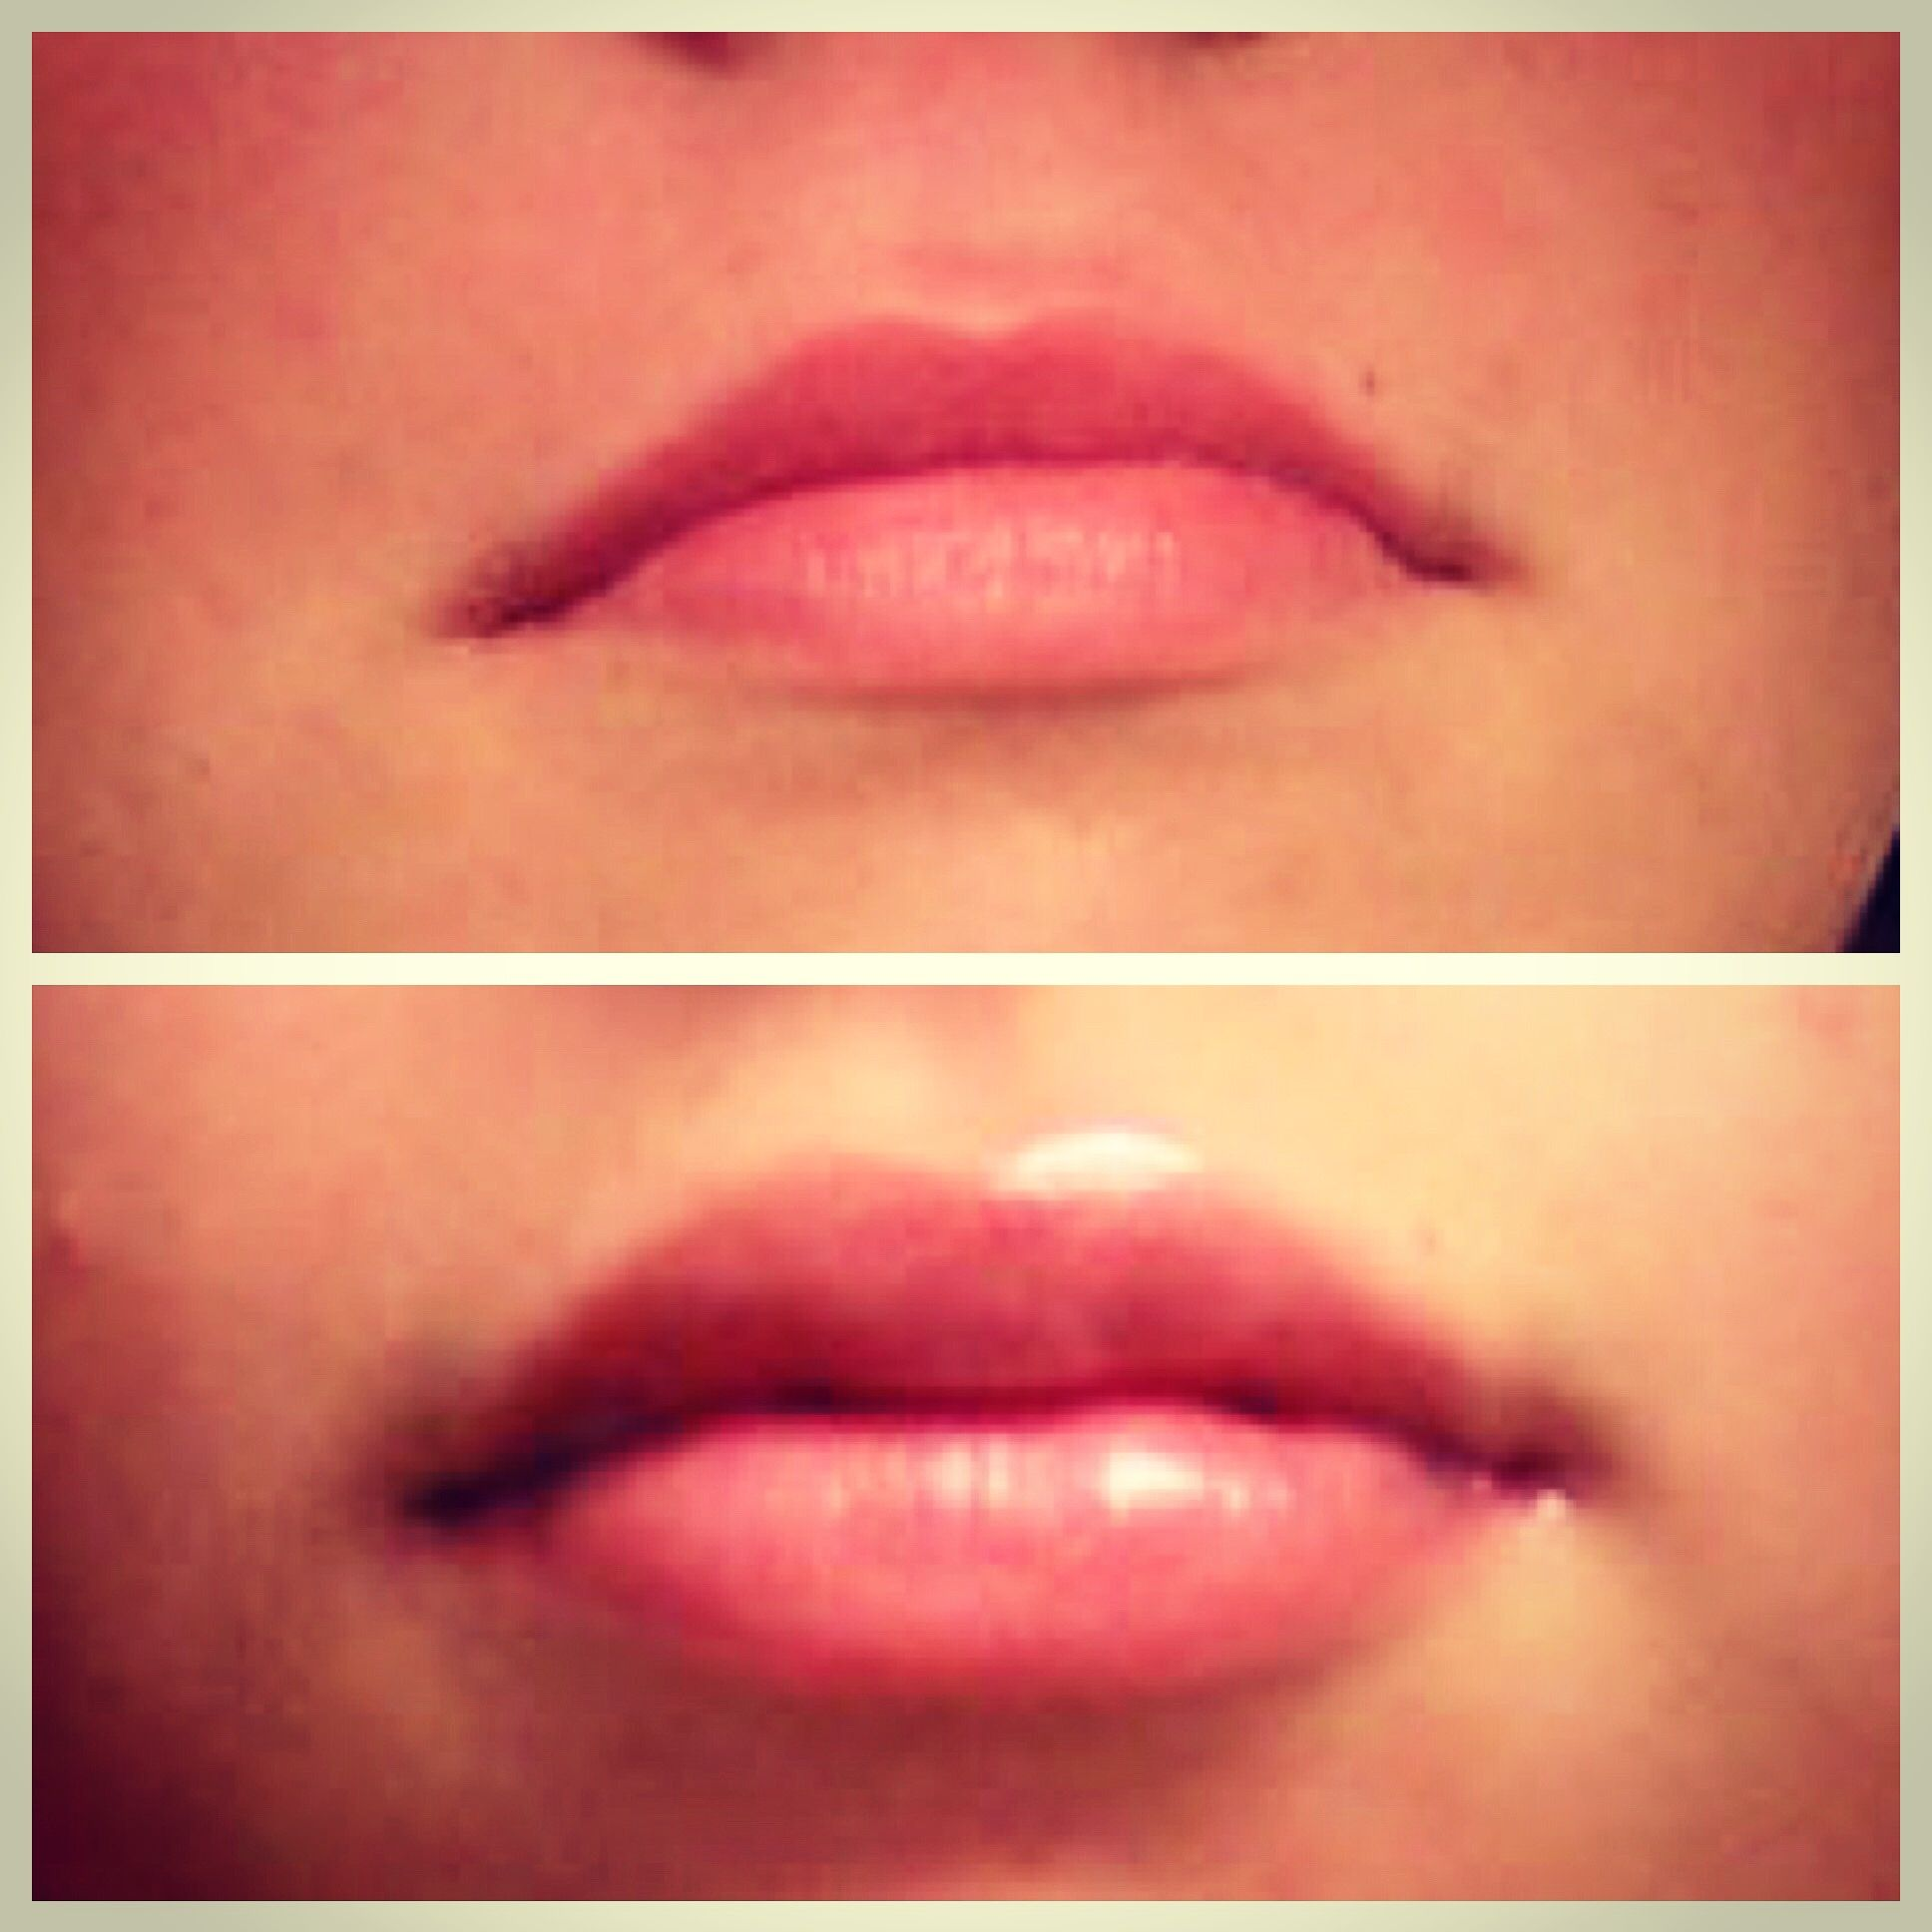 282f2a5d9fda7686367bb86c1ec2c47d - How Often Do You Have To Get Your Lips Refilled